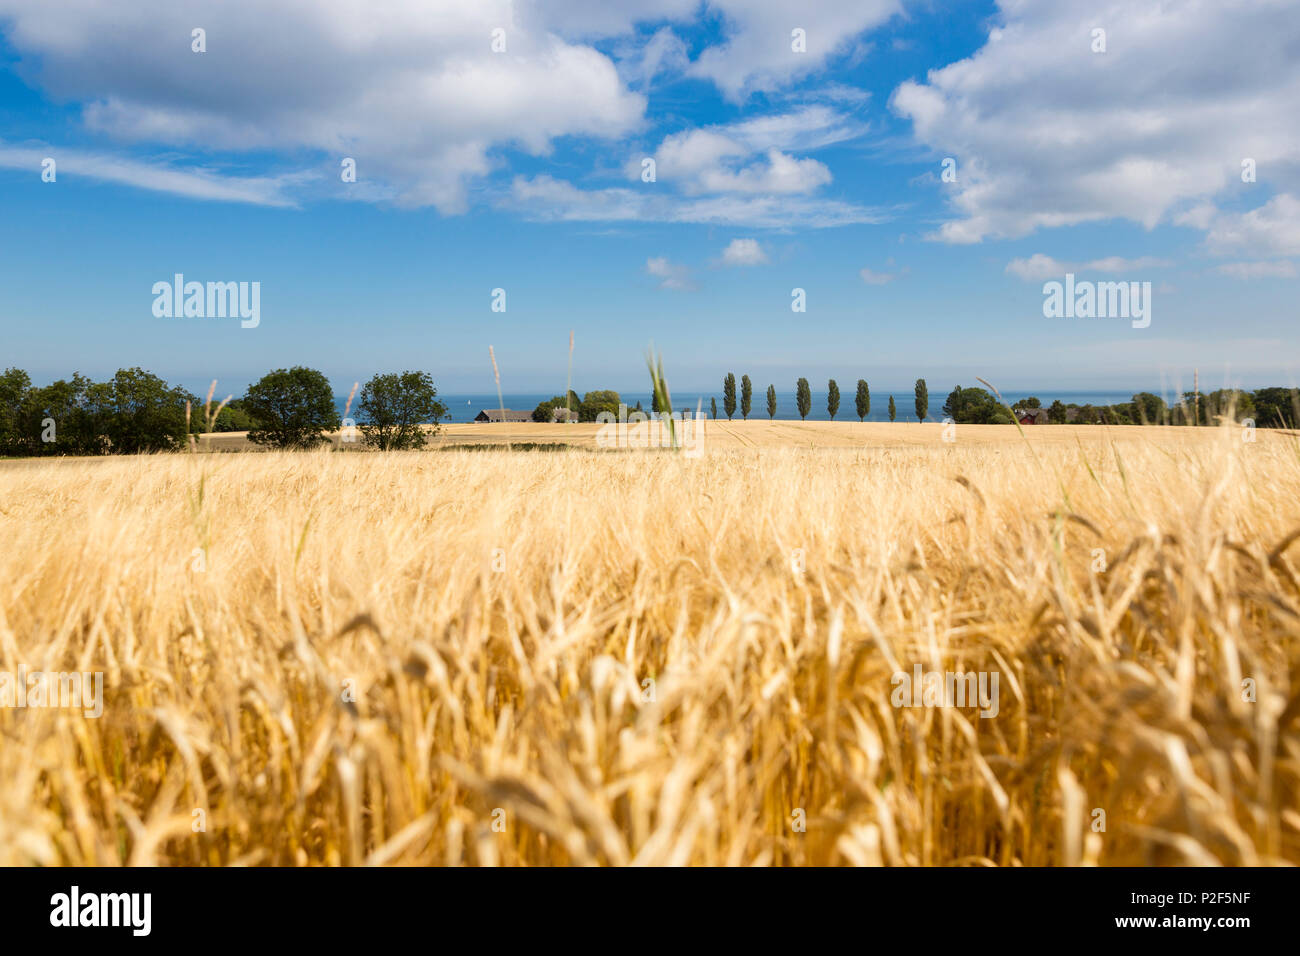 Cornfield in summer, Baltic sea, Bornholm, near Gudhjem, Denmark, Europe Stock Photo